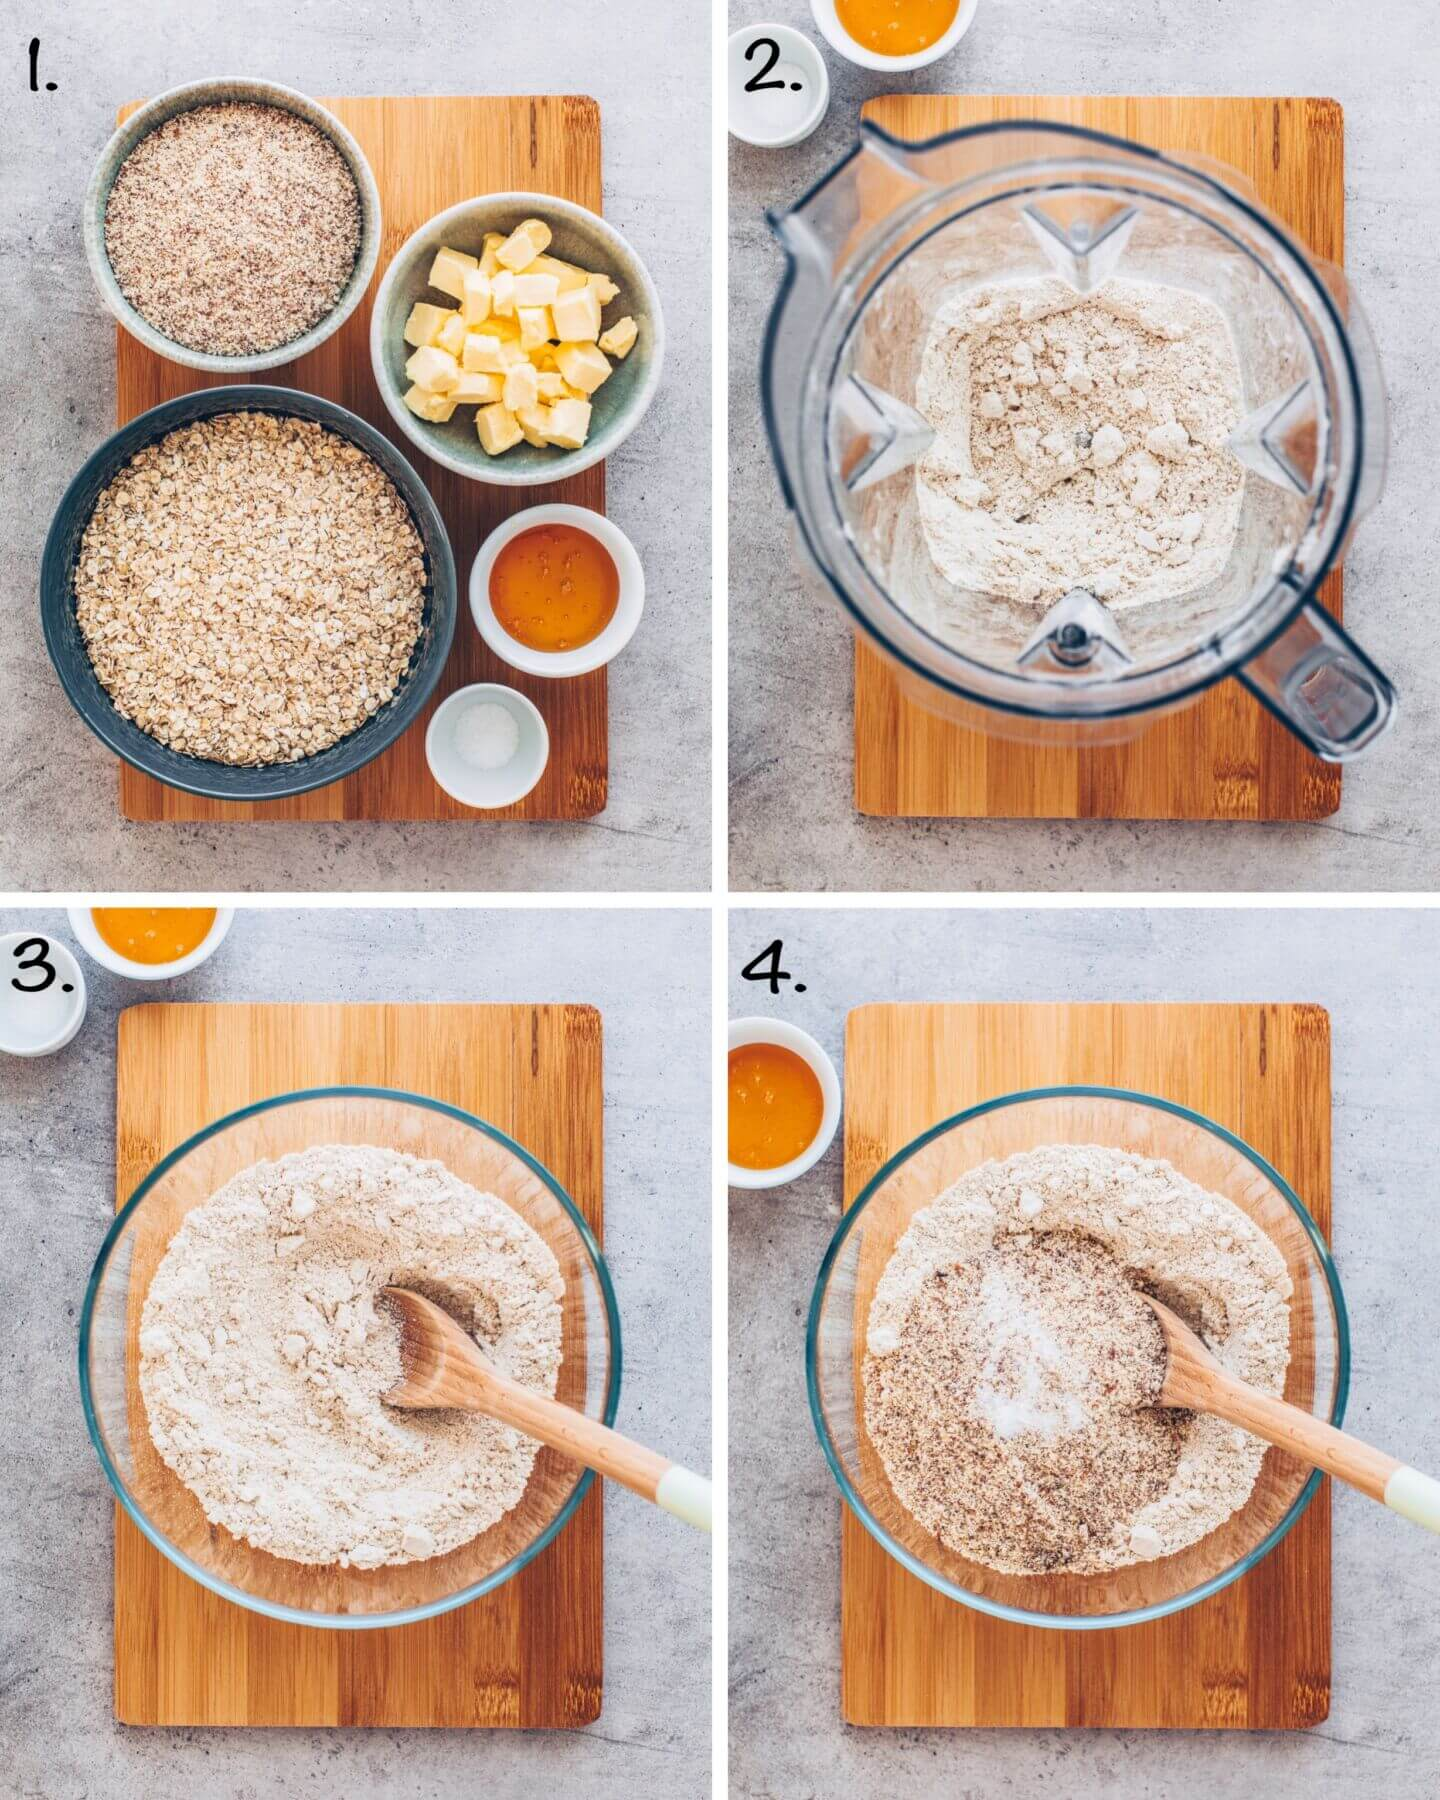 How to make gluten-free vegan tart crust with oats and almonds